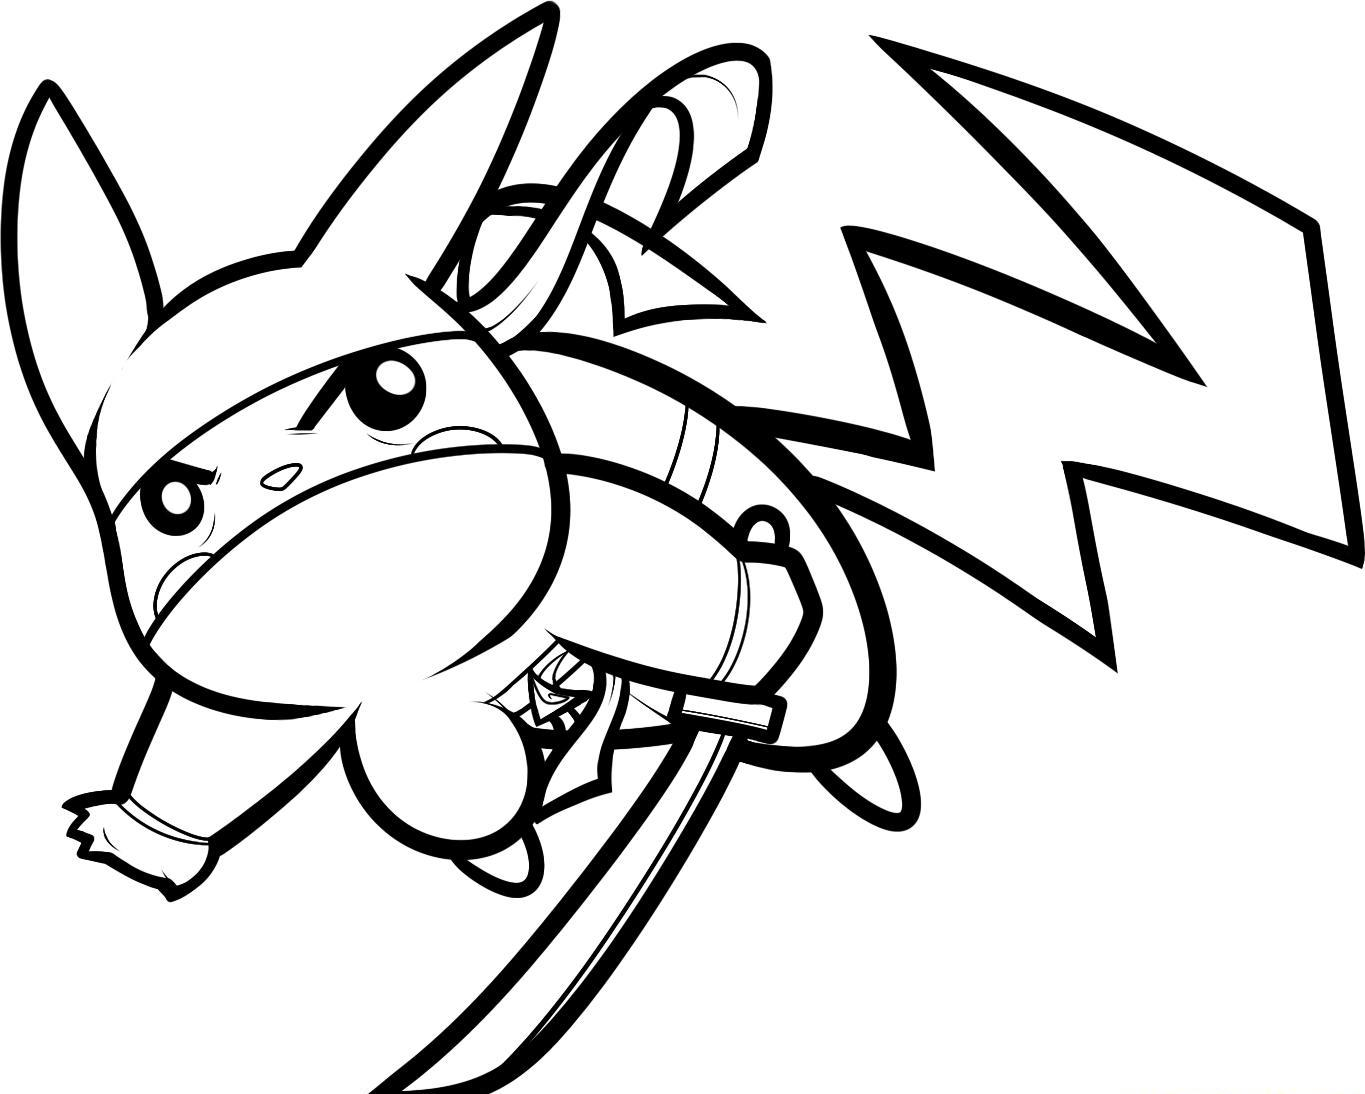 1365x1094 Pikachu Coloring Pages